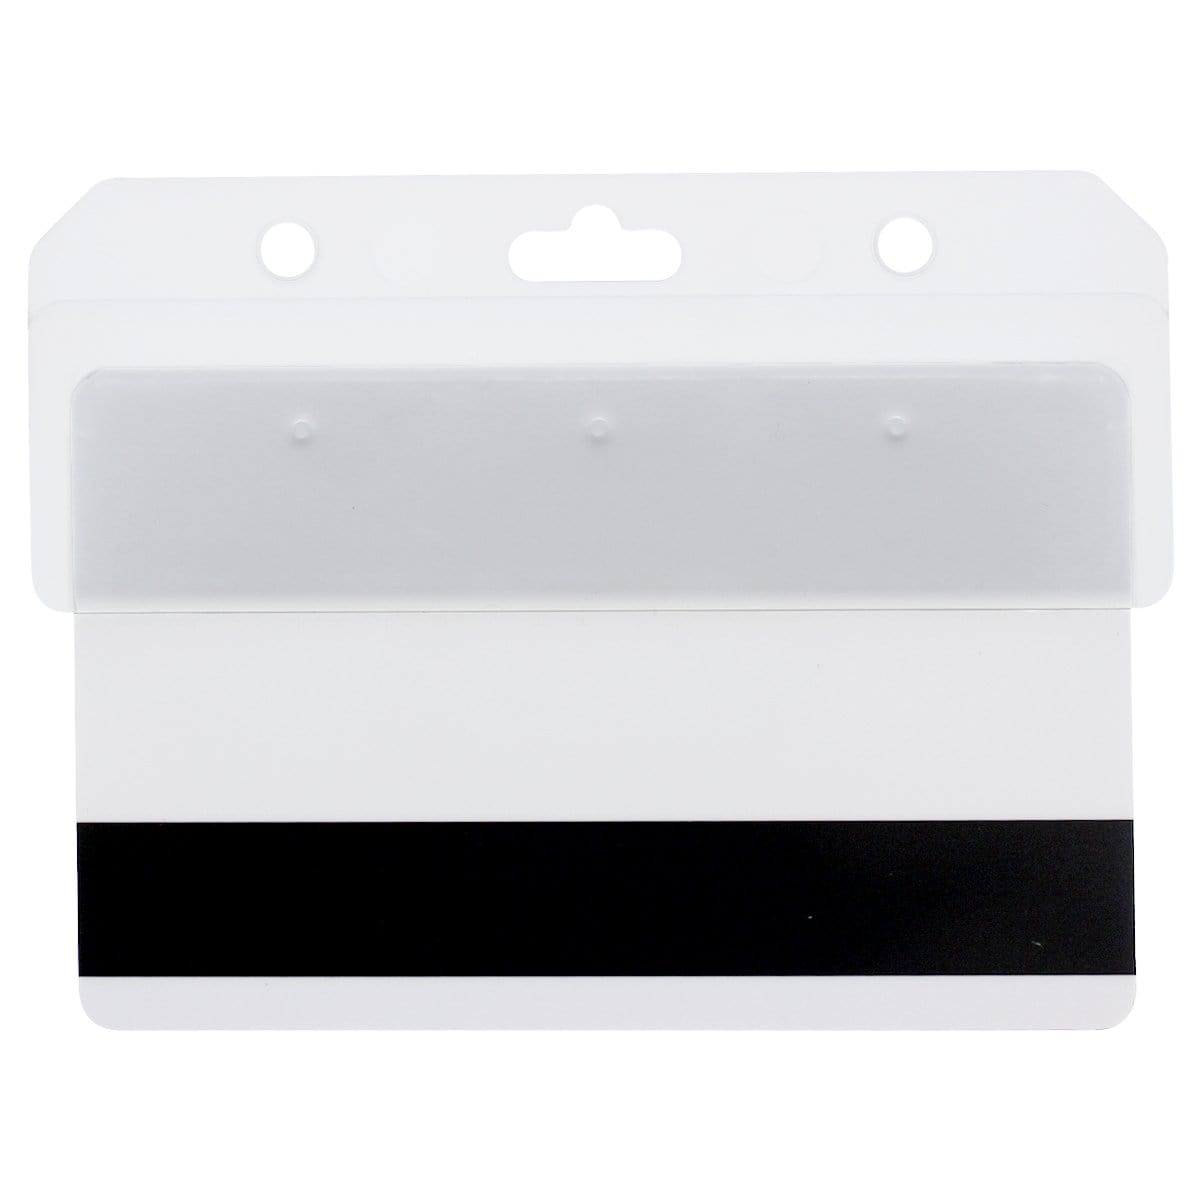 Frosted Rigid Plastic Horizontal Half Card Holder (1840-8000)